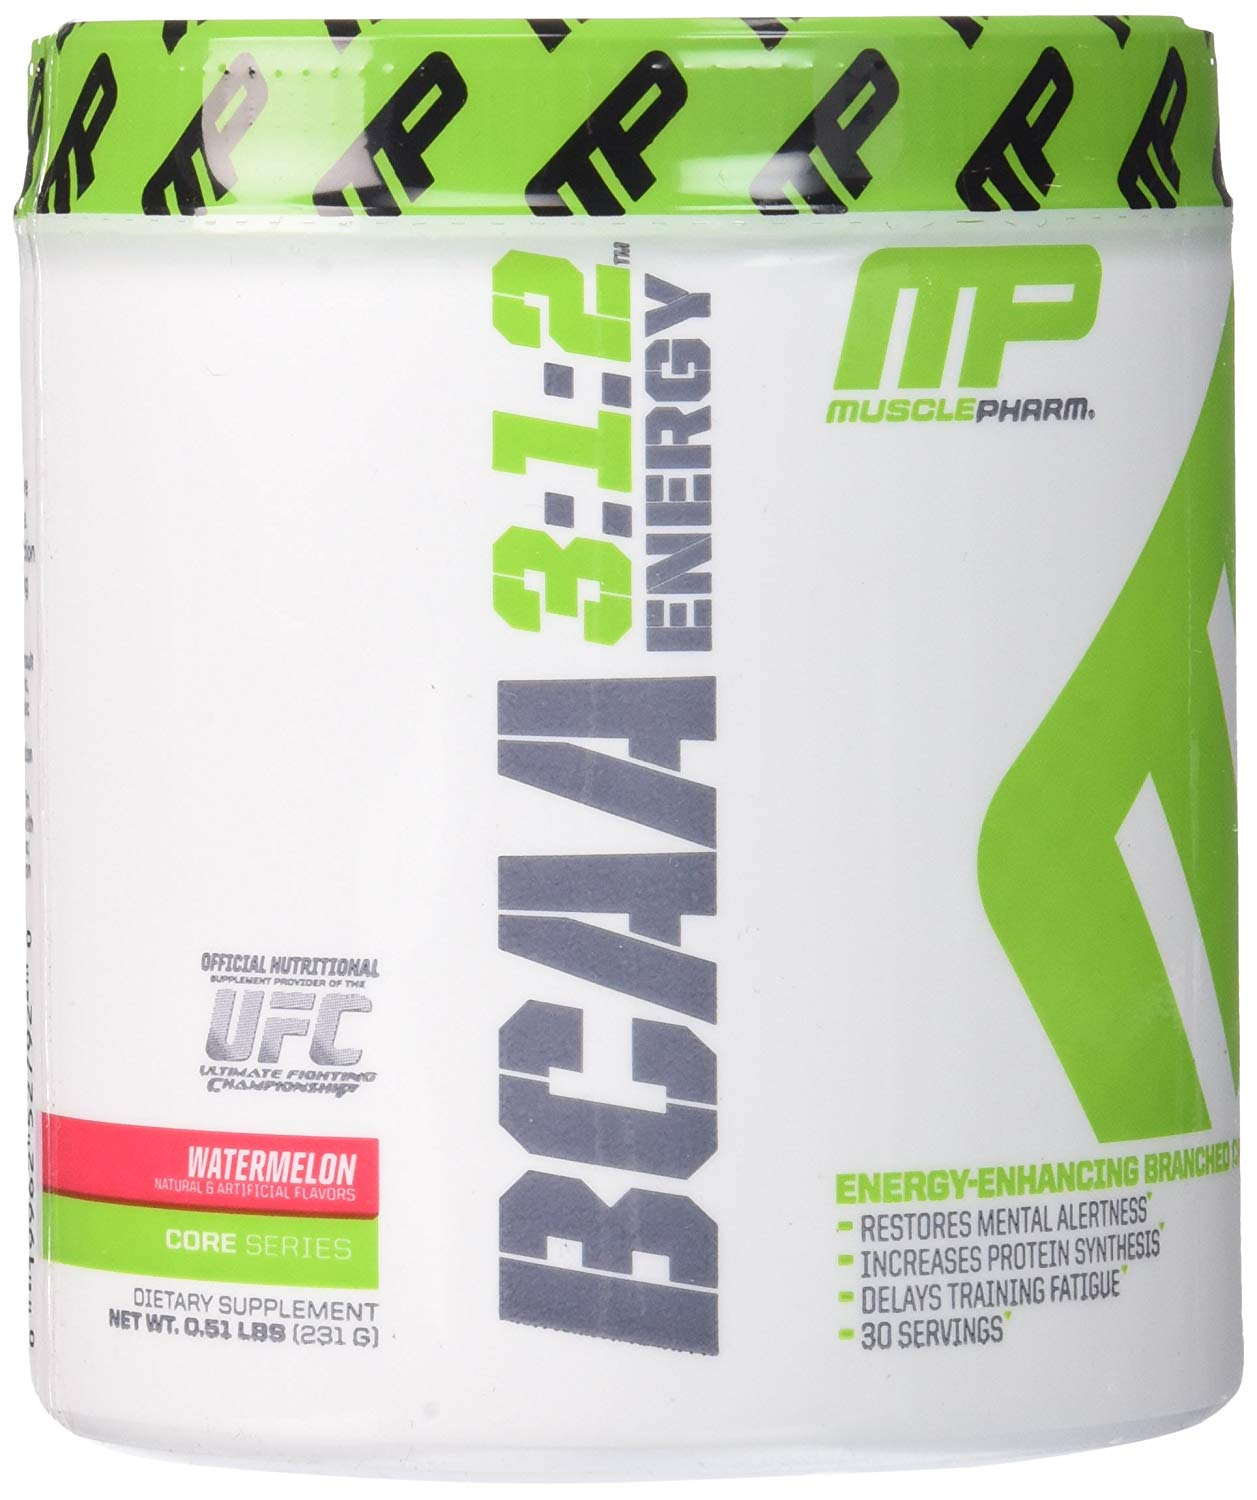 MusclePharm BCAA Powder Review – Is It Worth It?